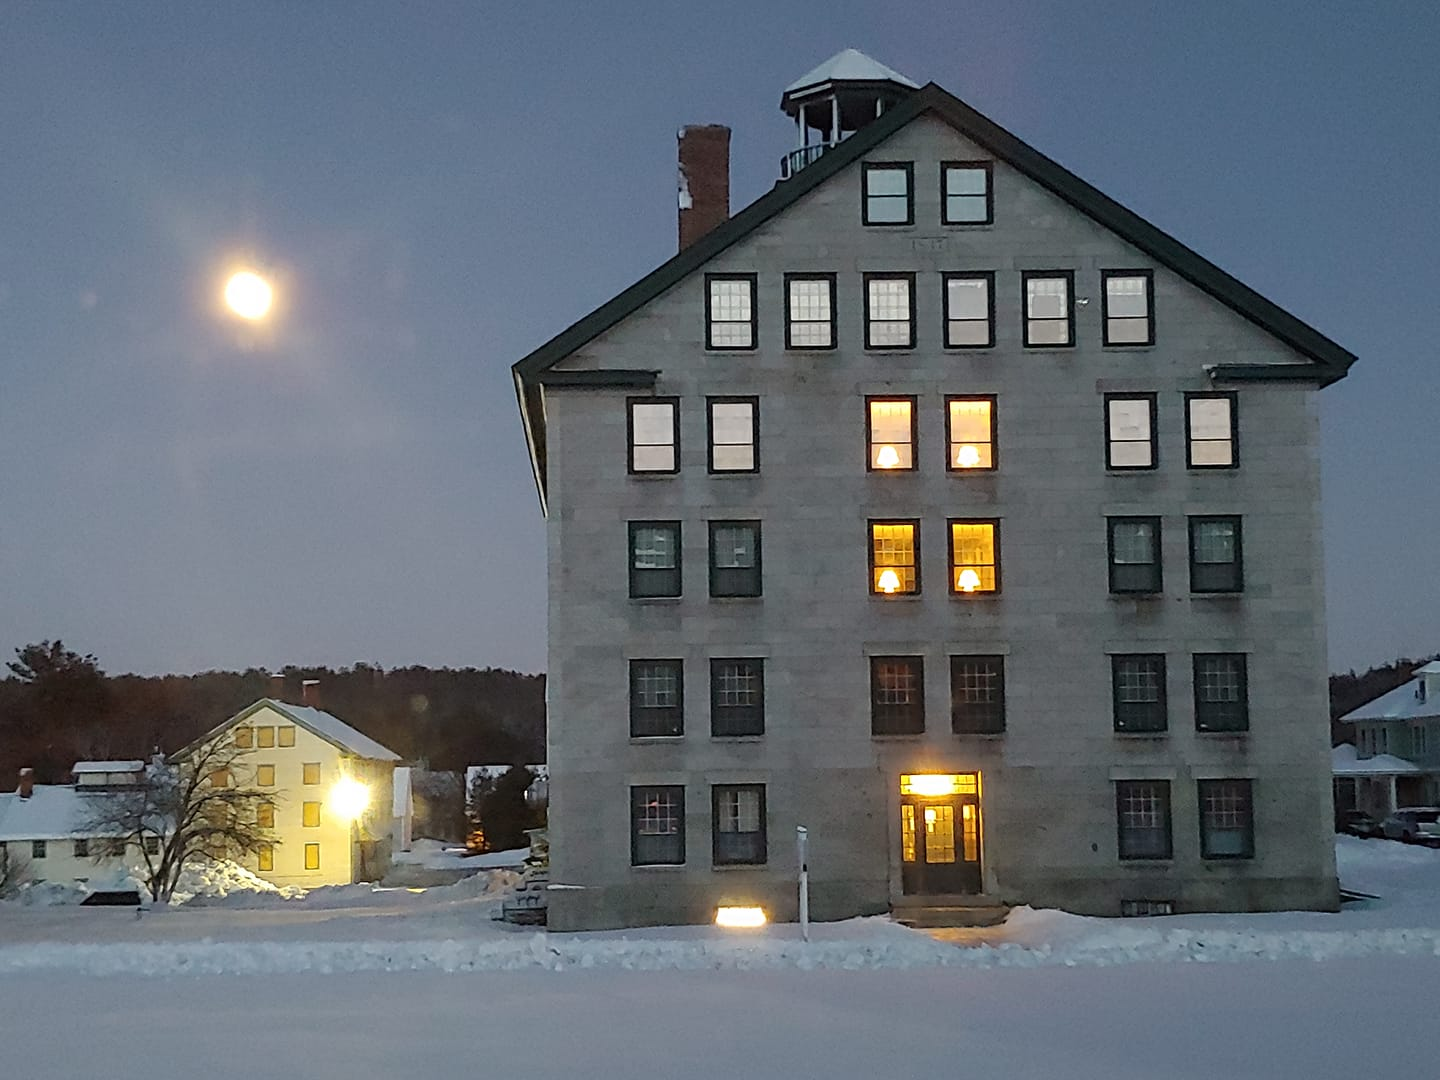 Winter evening scene of Enfield Shaker Museum's Great Stone Dwelling, featuring snowy landscape and full moon in the night sky